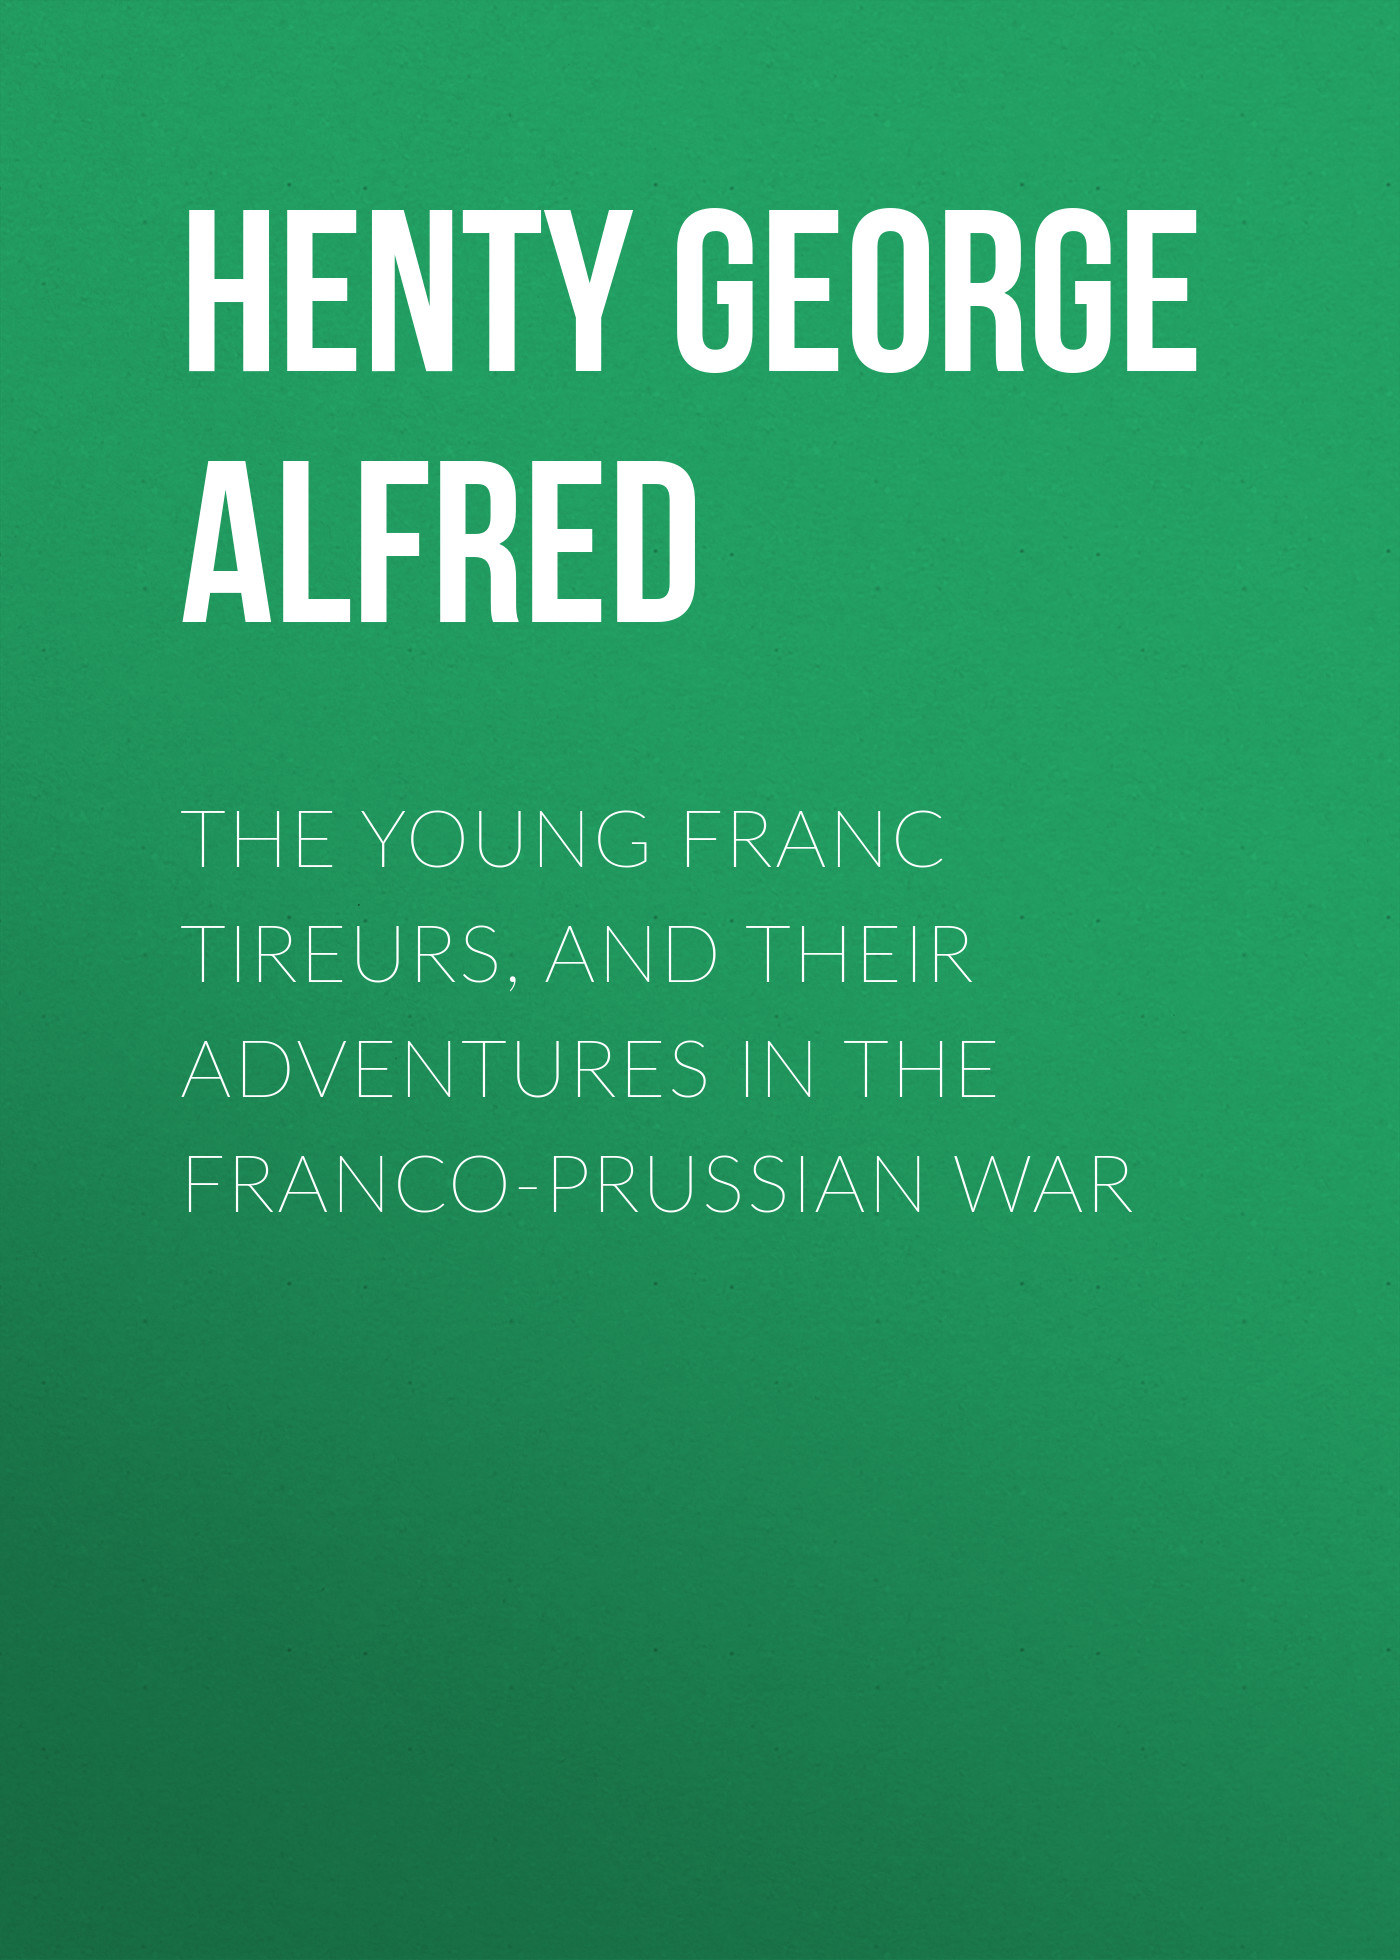 Henty George Alfred The Young Franc Tireurs, and Their Adventures in the Franco-Prussian War henty george alfred in the reign of terror the adventures of a westminster boy